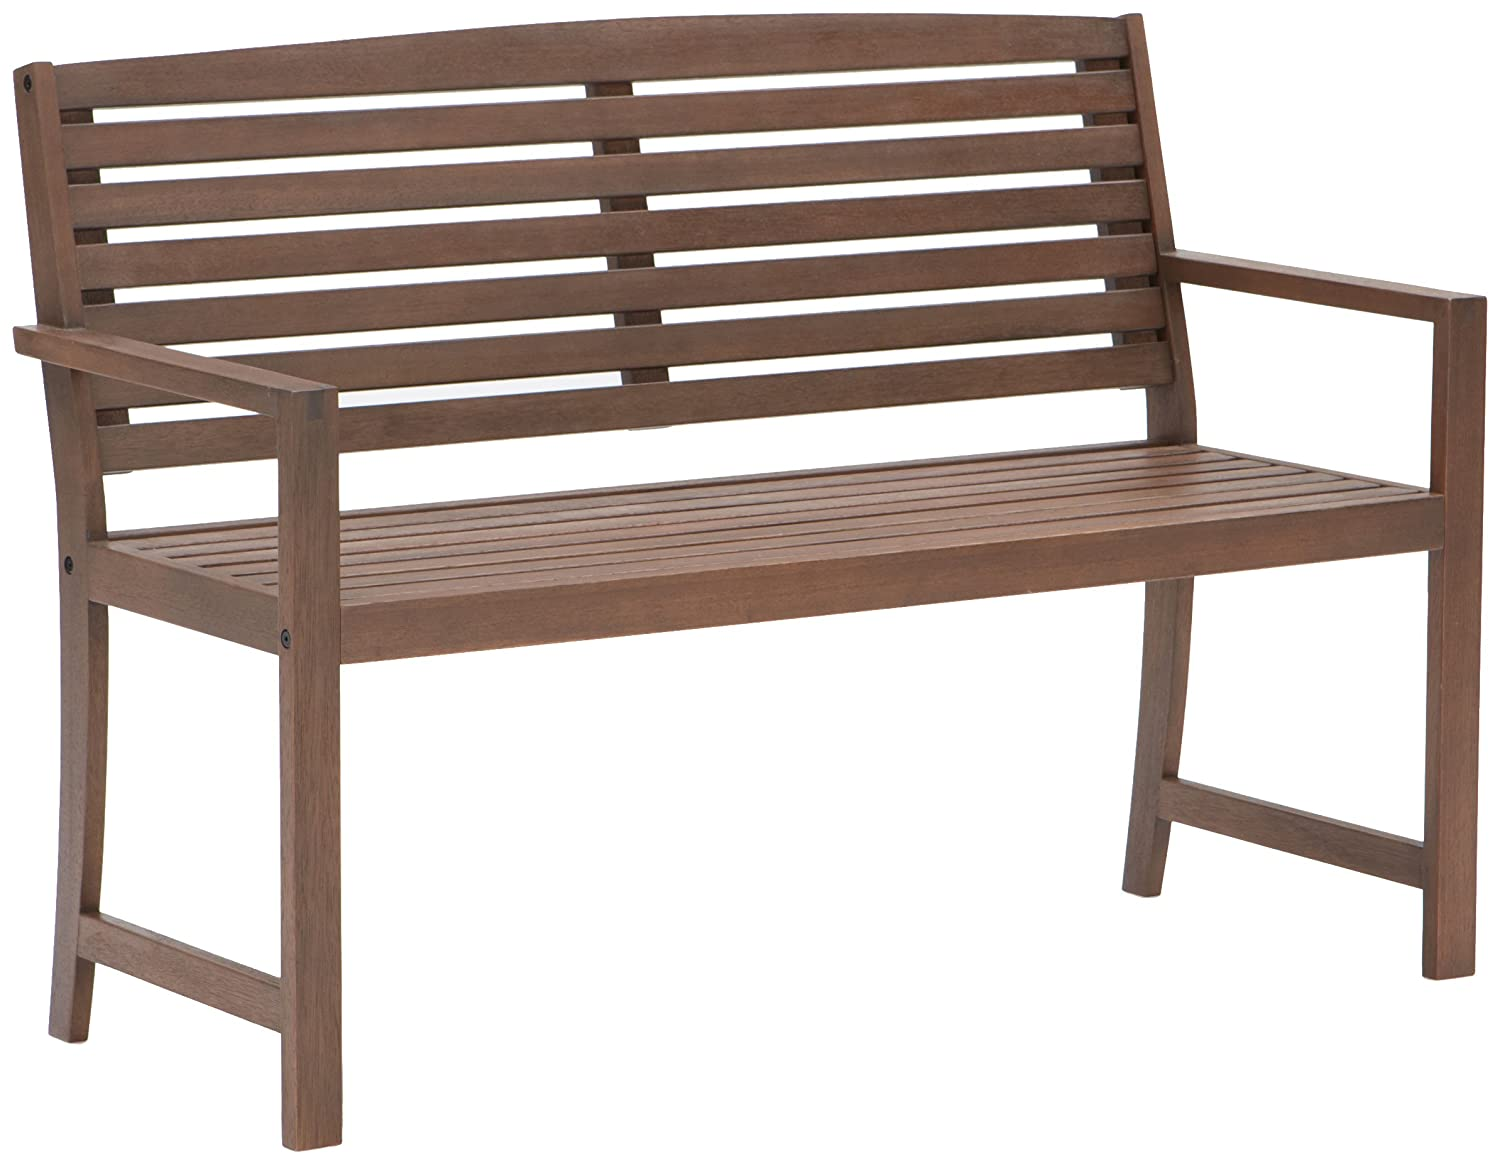 Wood patio bench home decor and furniture deals for Outdoor furniture deals